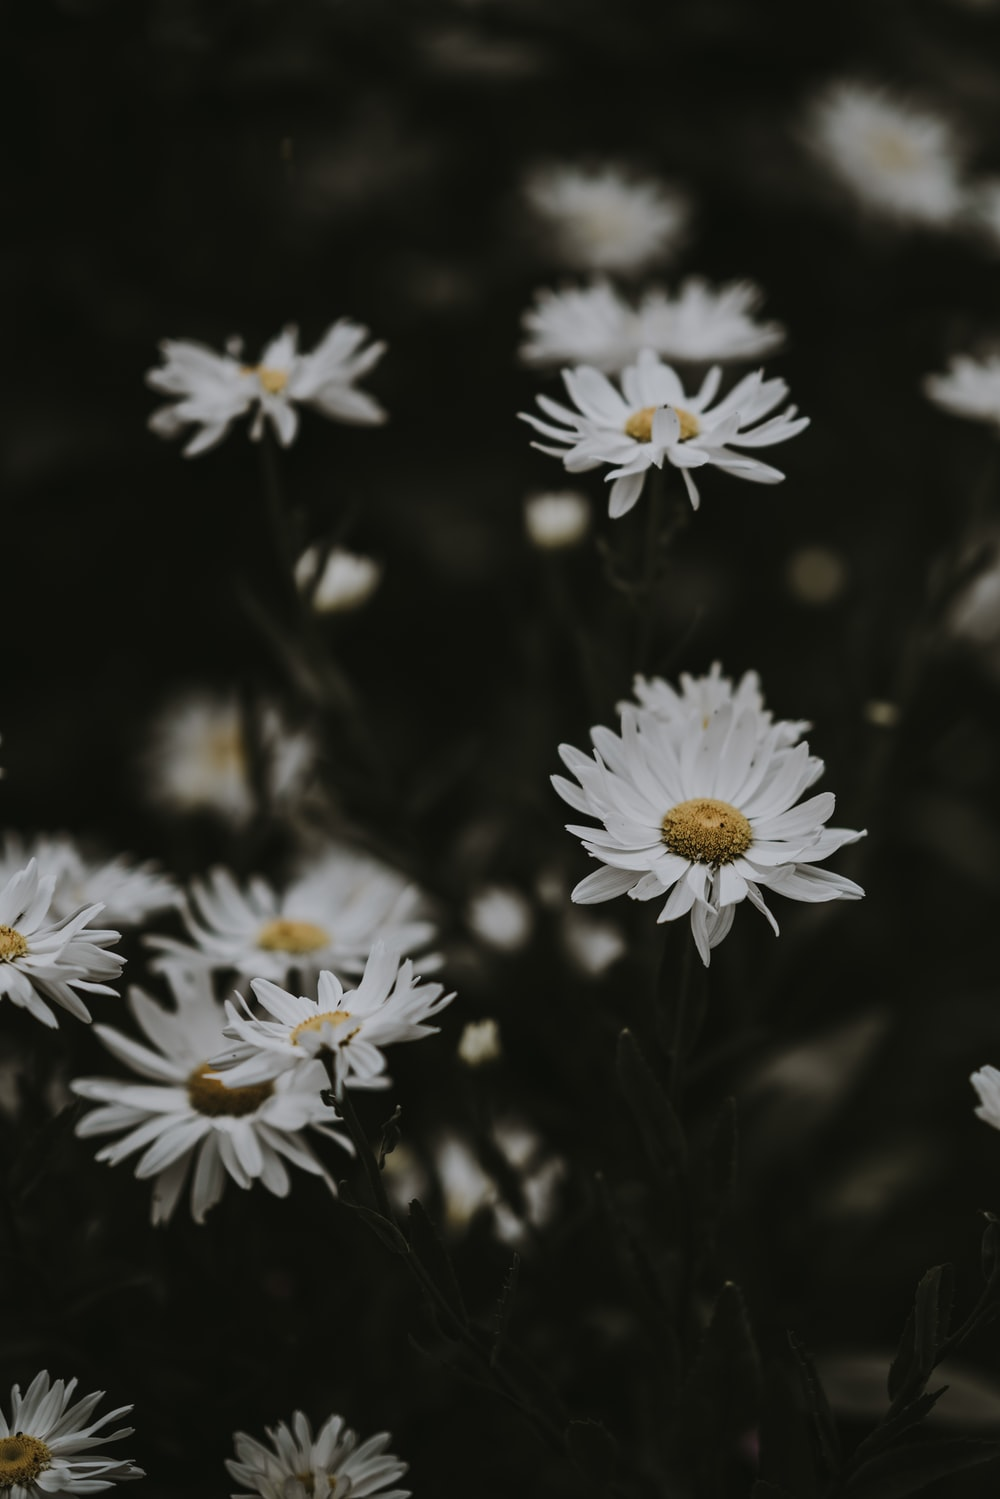 close up photography of white daisy flowers